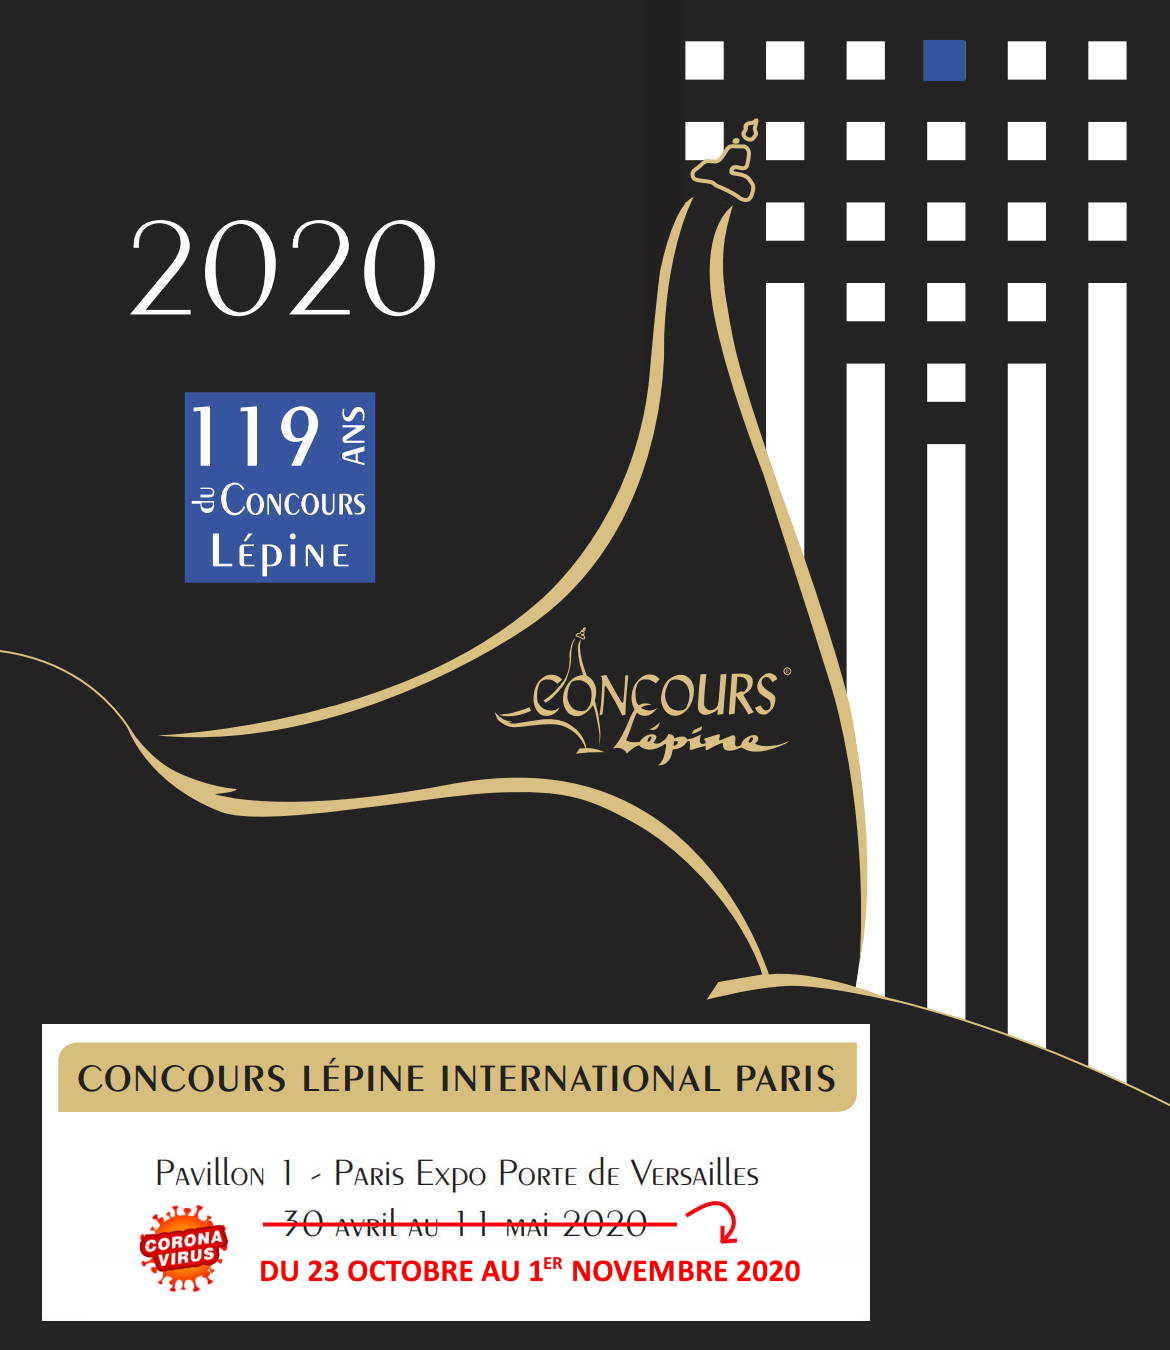 Concours Lepine 2020